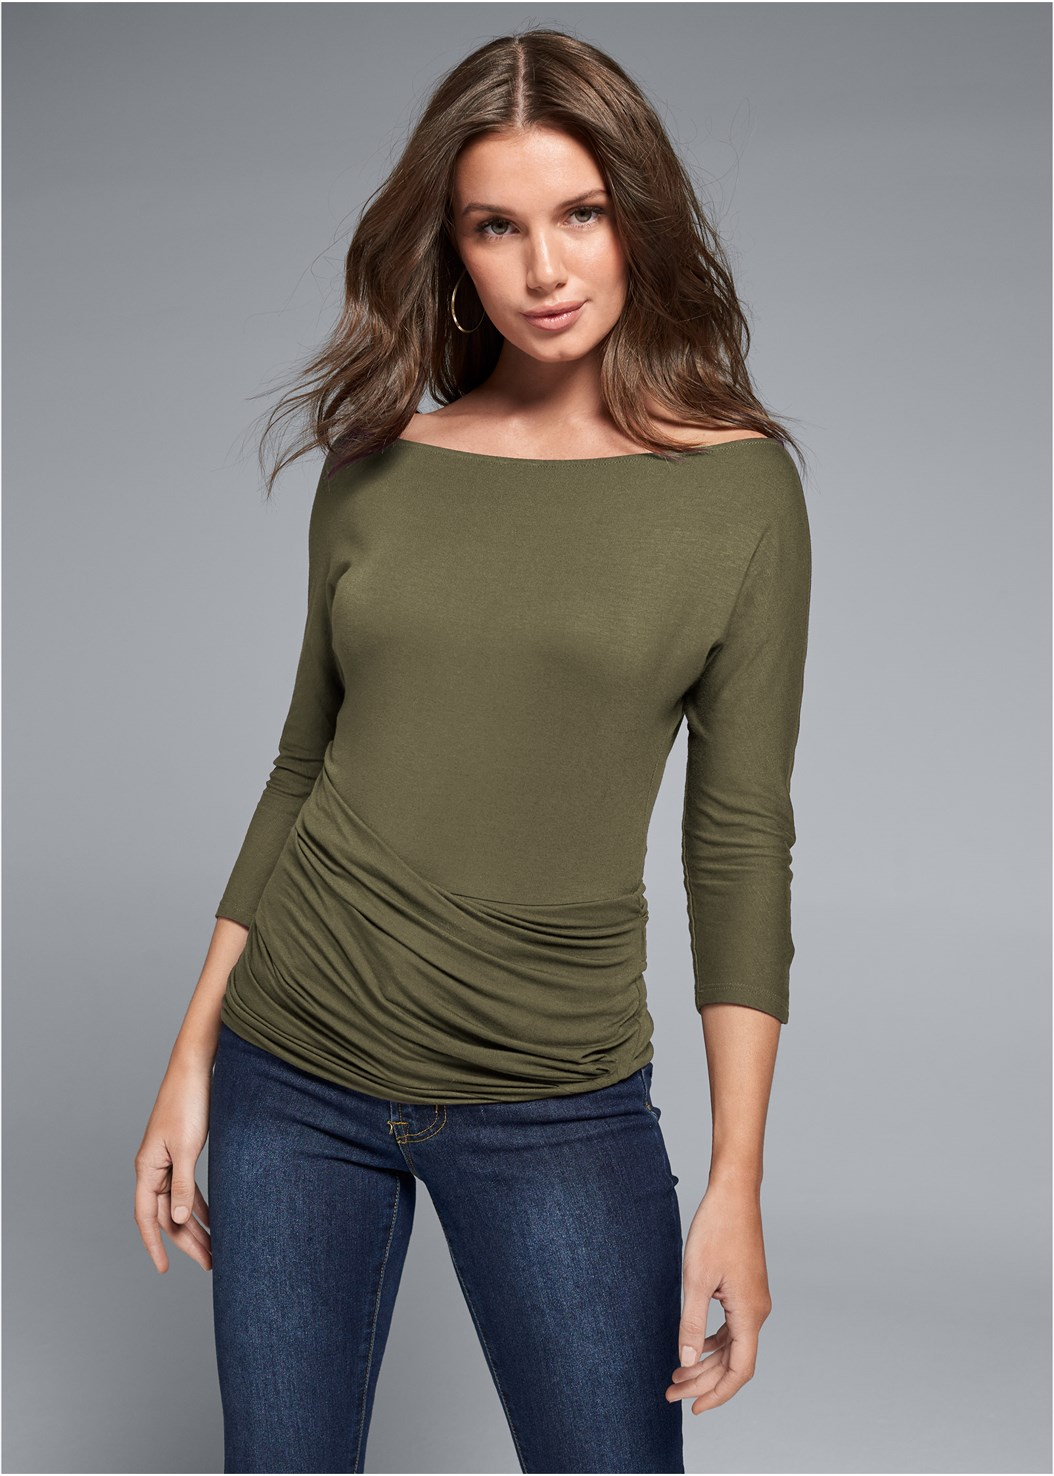 Casual Top,Mid Rise Color Skinny Jeans,Kissable Convertible Bra,Over The Knee Stretch Boots